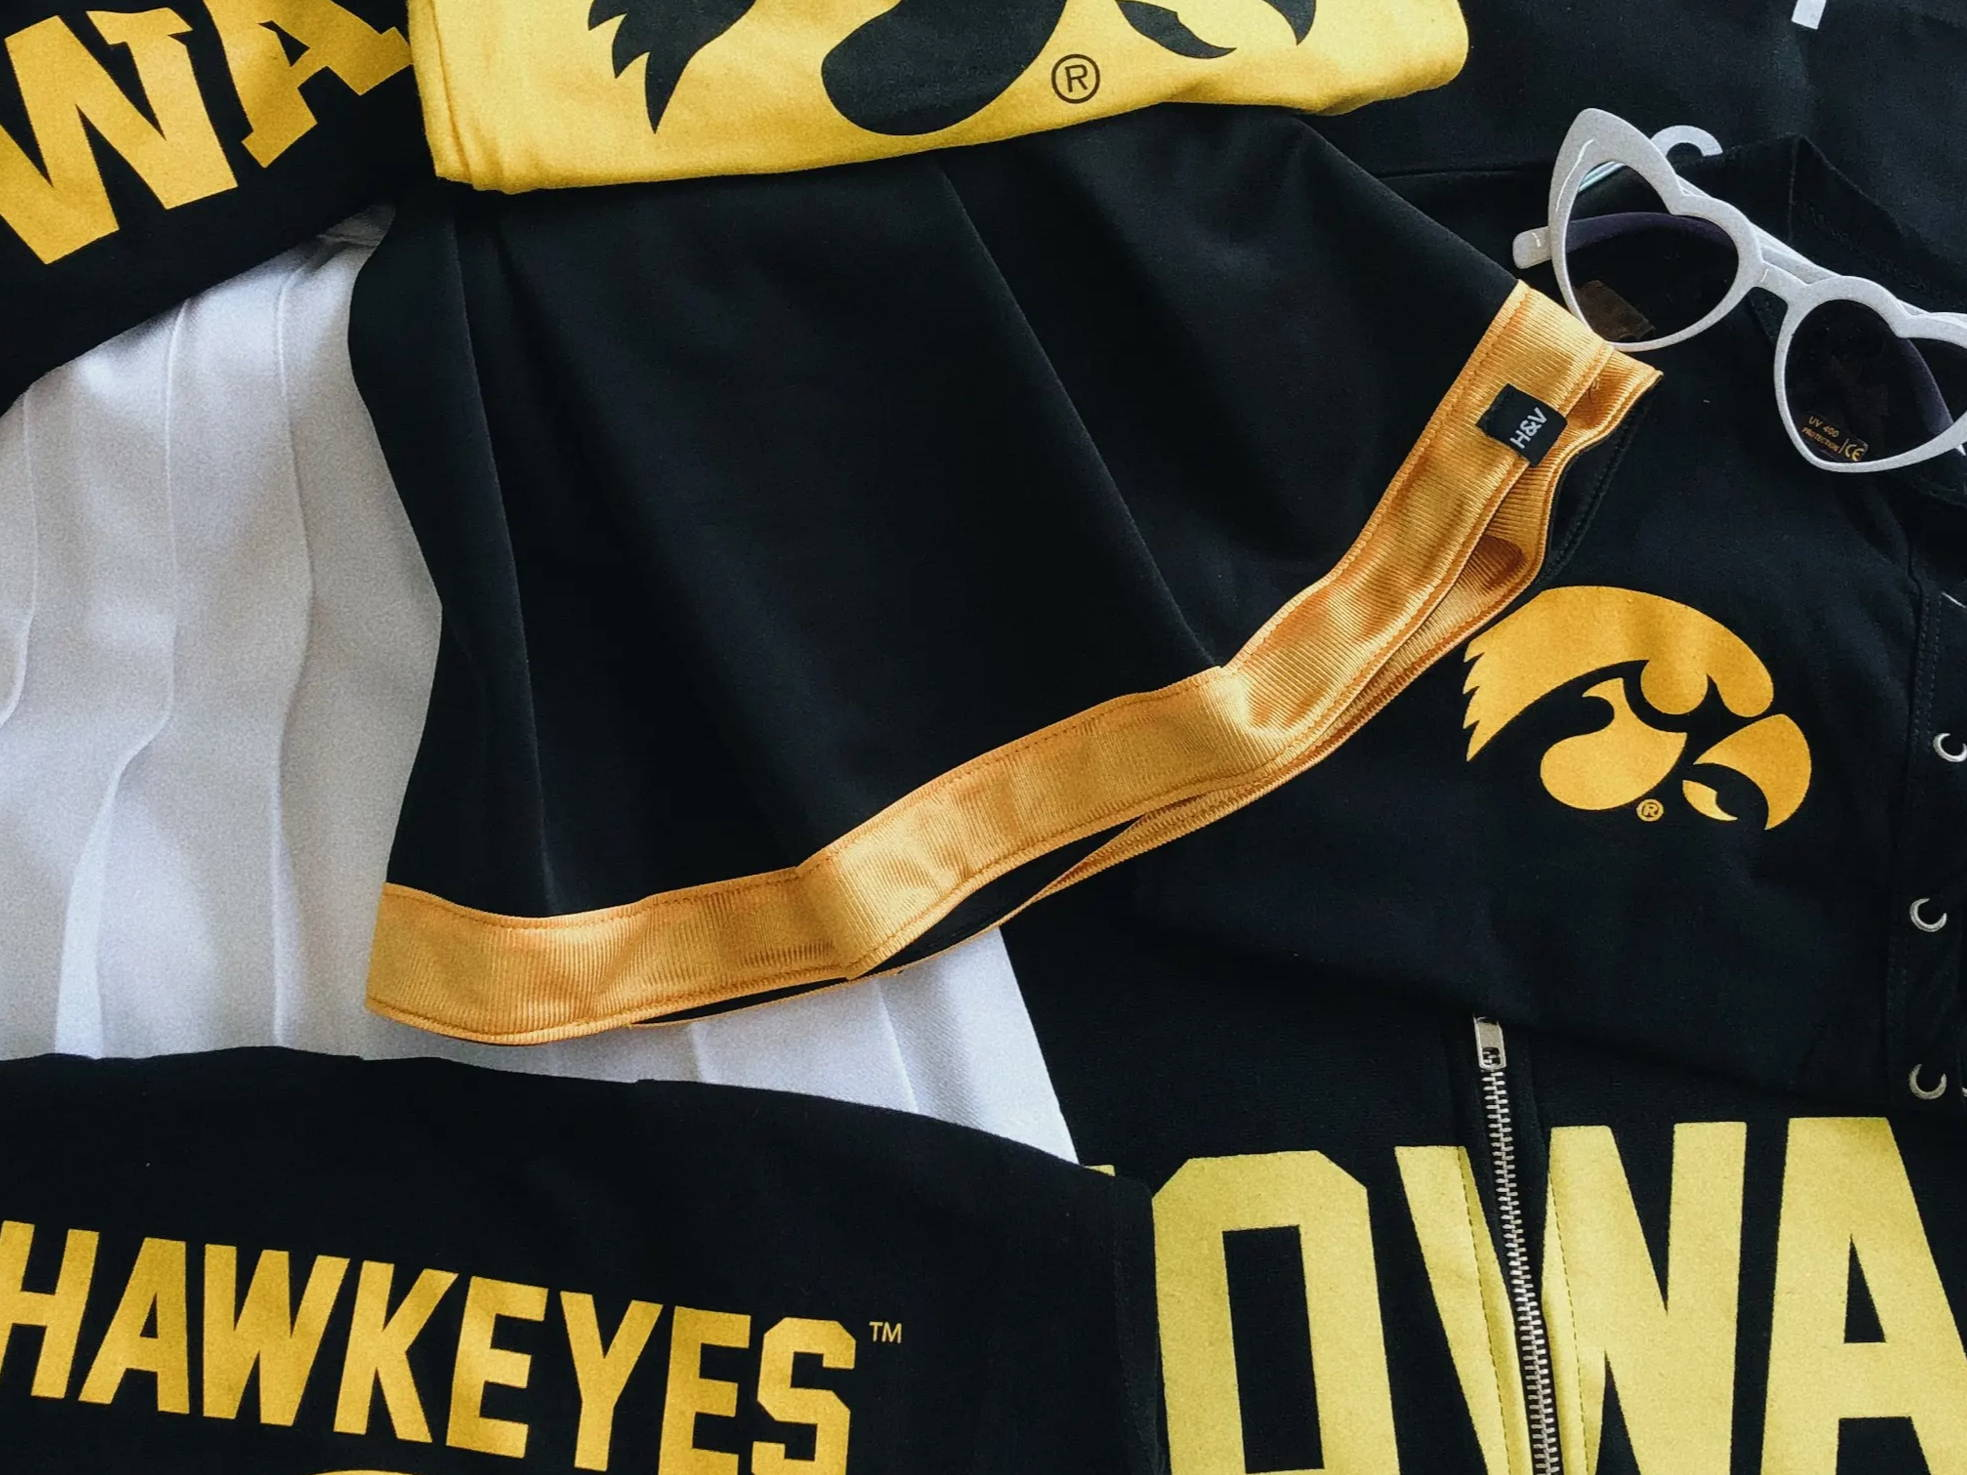 University of Iowa Hawkeyes college apparel for women. Cute and trendy!